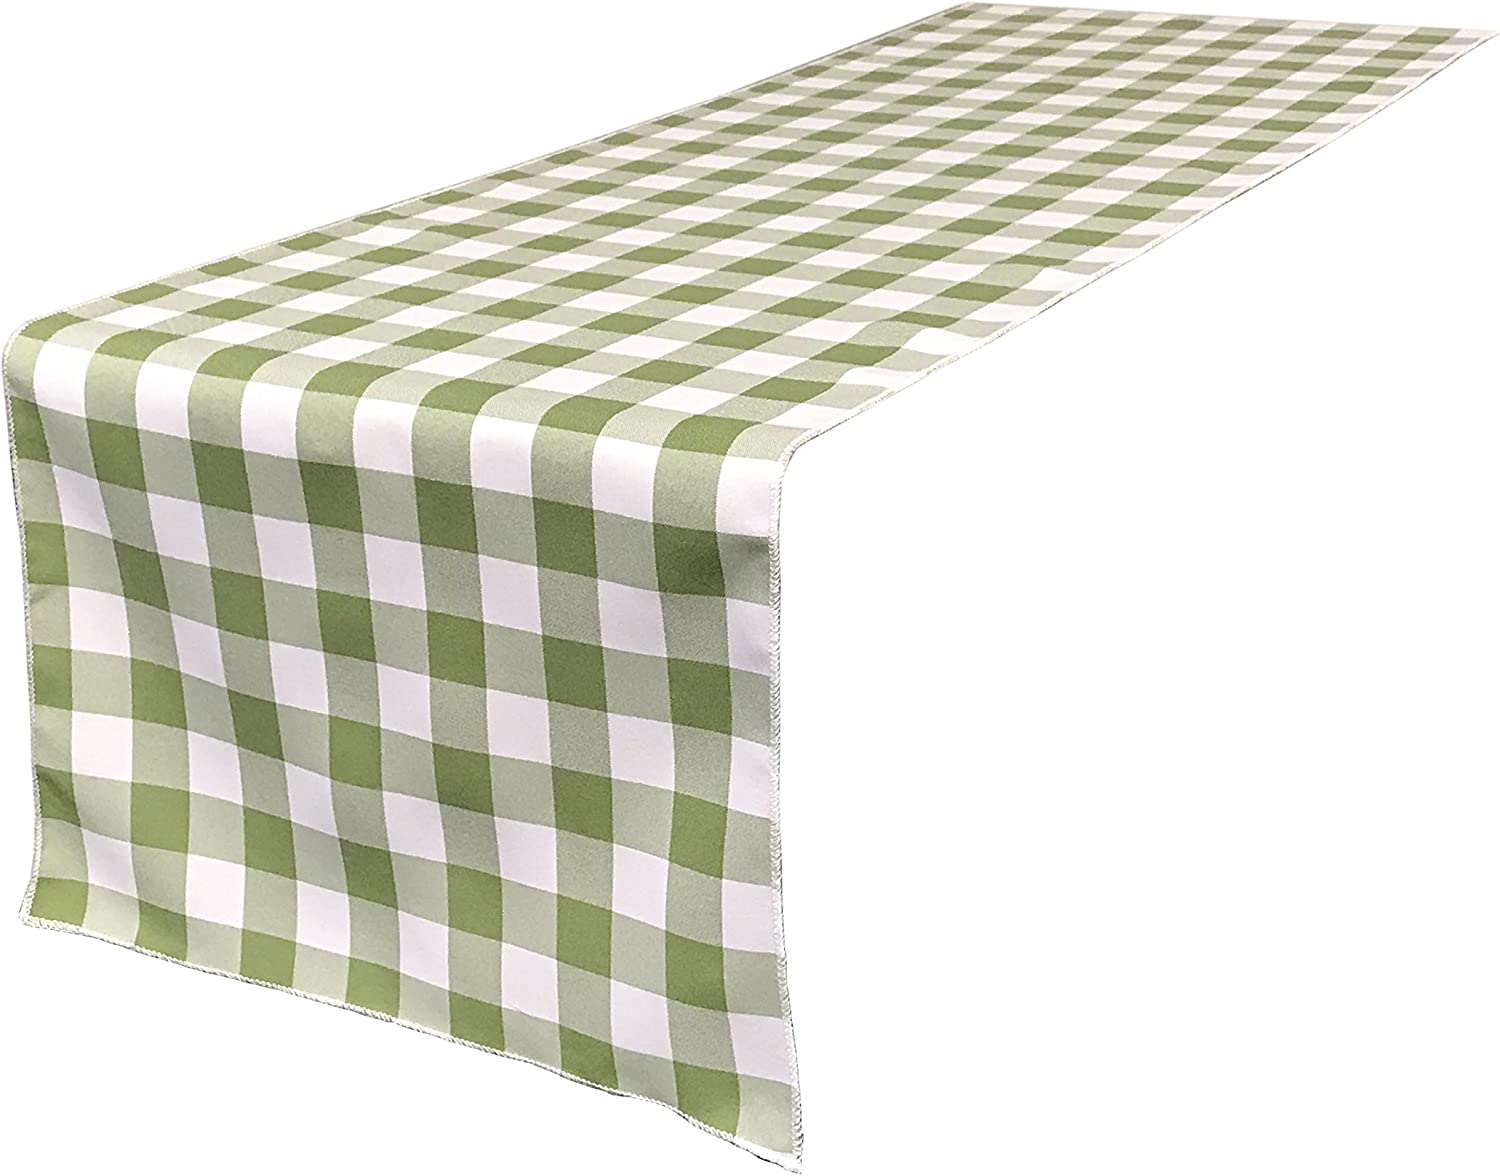 LA Linen Polyester Gingham Checkered 14 by 108-Inch Table Runner, Green, Apple/White